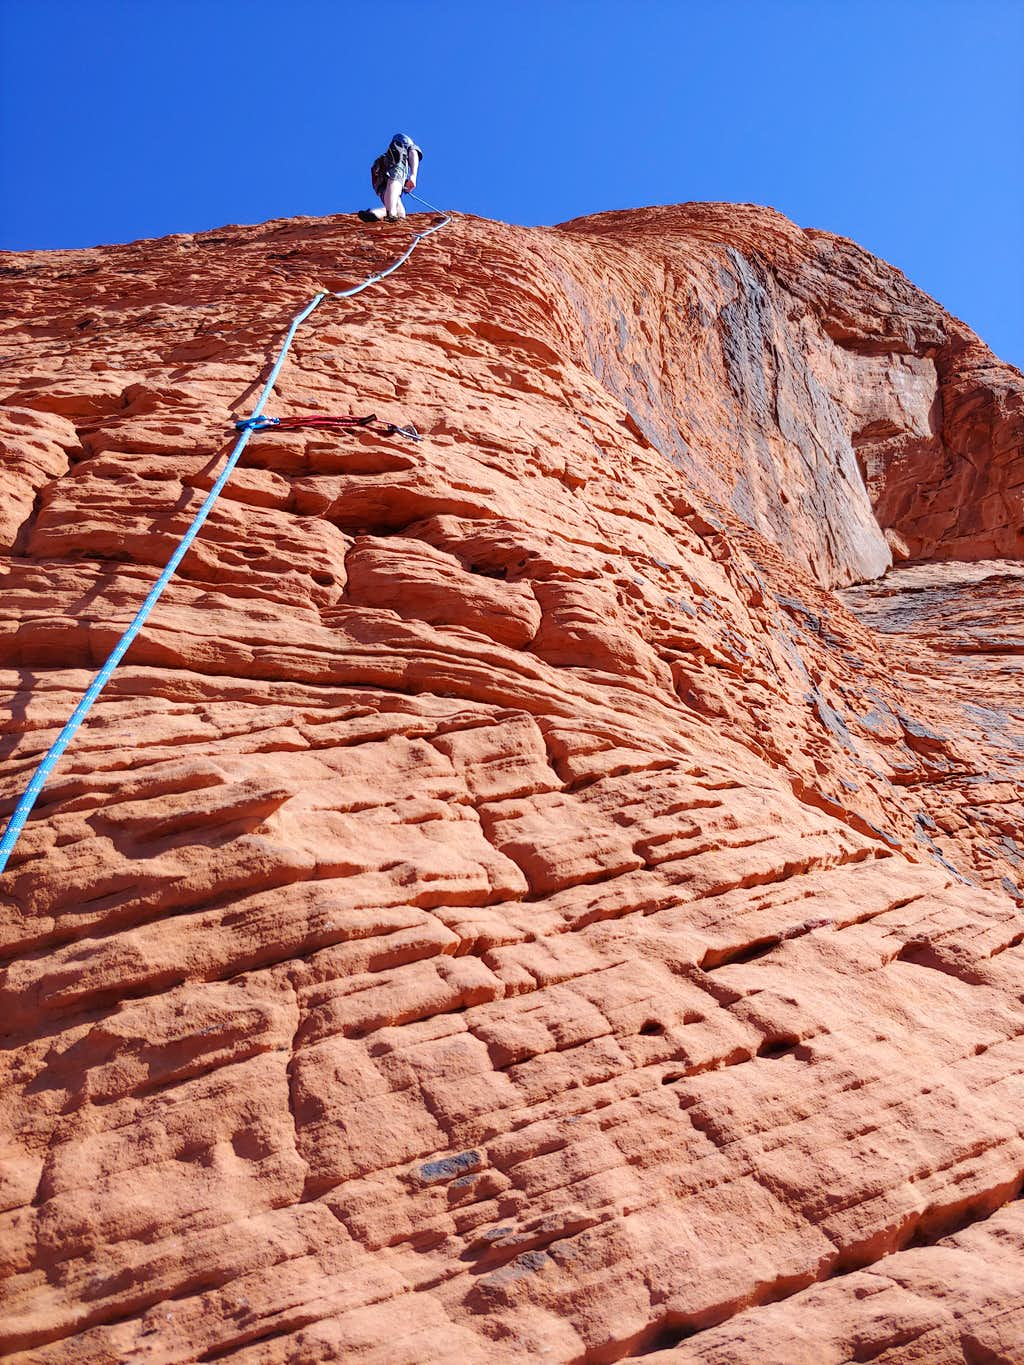 Jack Leading Guildenstern, 5.5